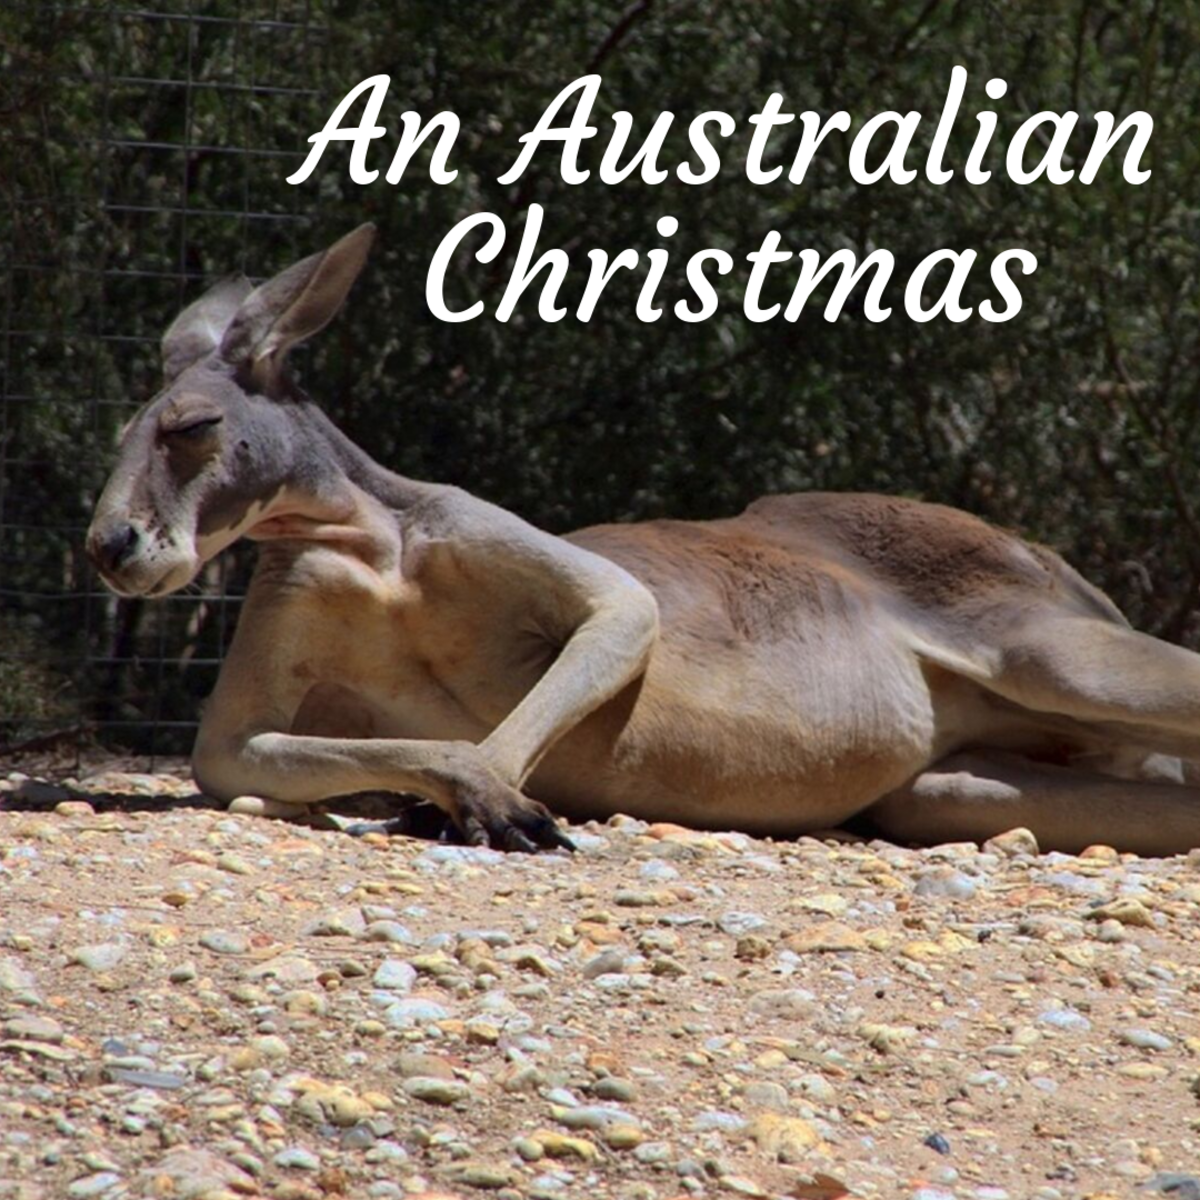 This article will give you an idea of what Christmas is like down in Australia.